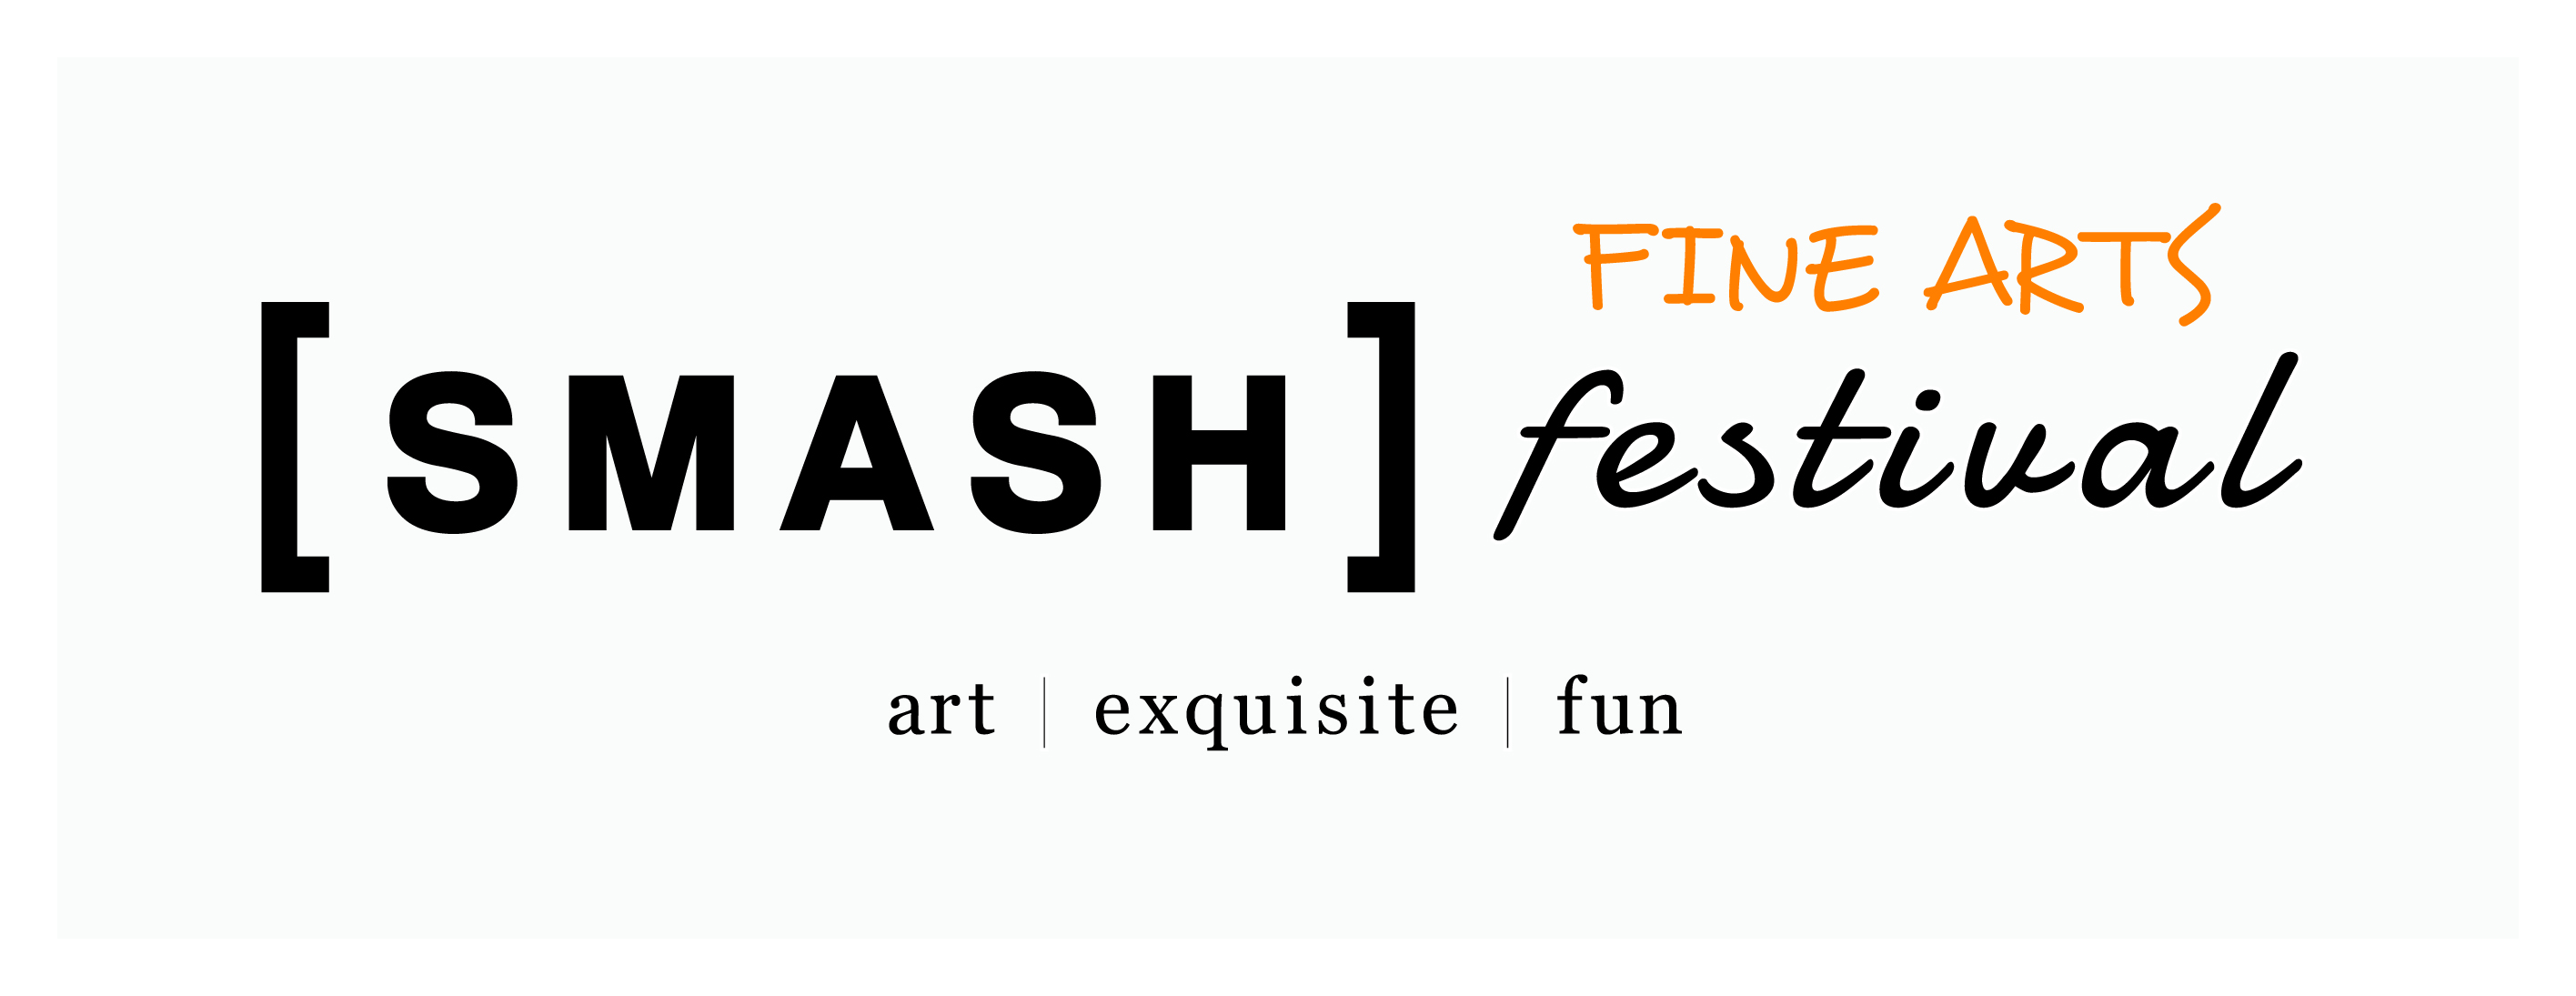 Smash Spring Fine Arts Festival (Castle Pines, CO) – Call For Artists